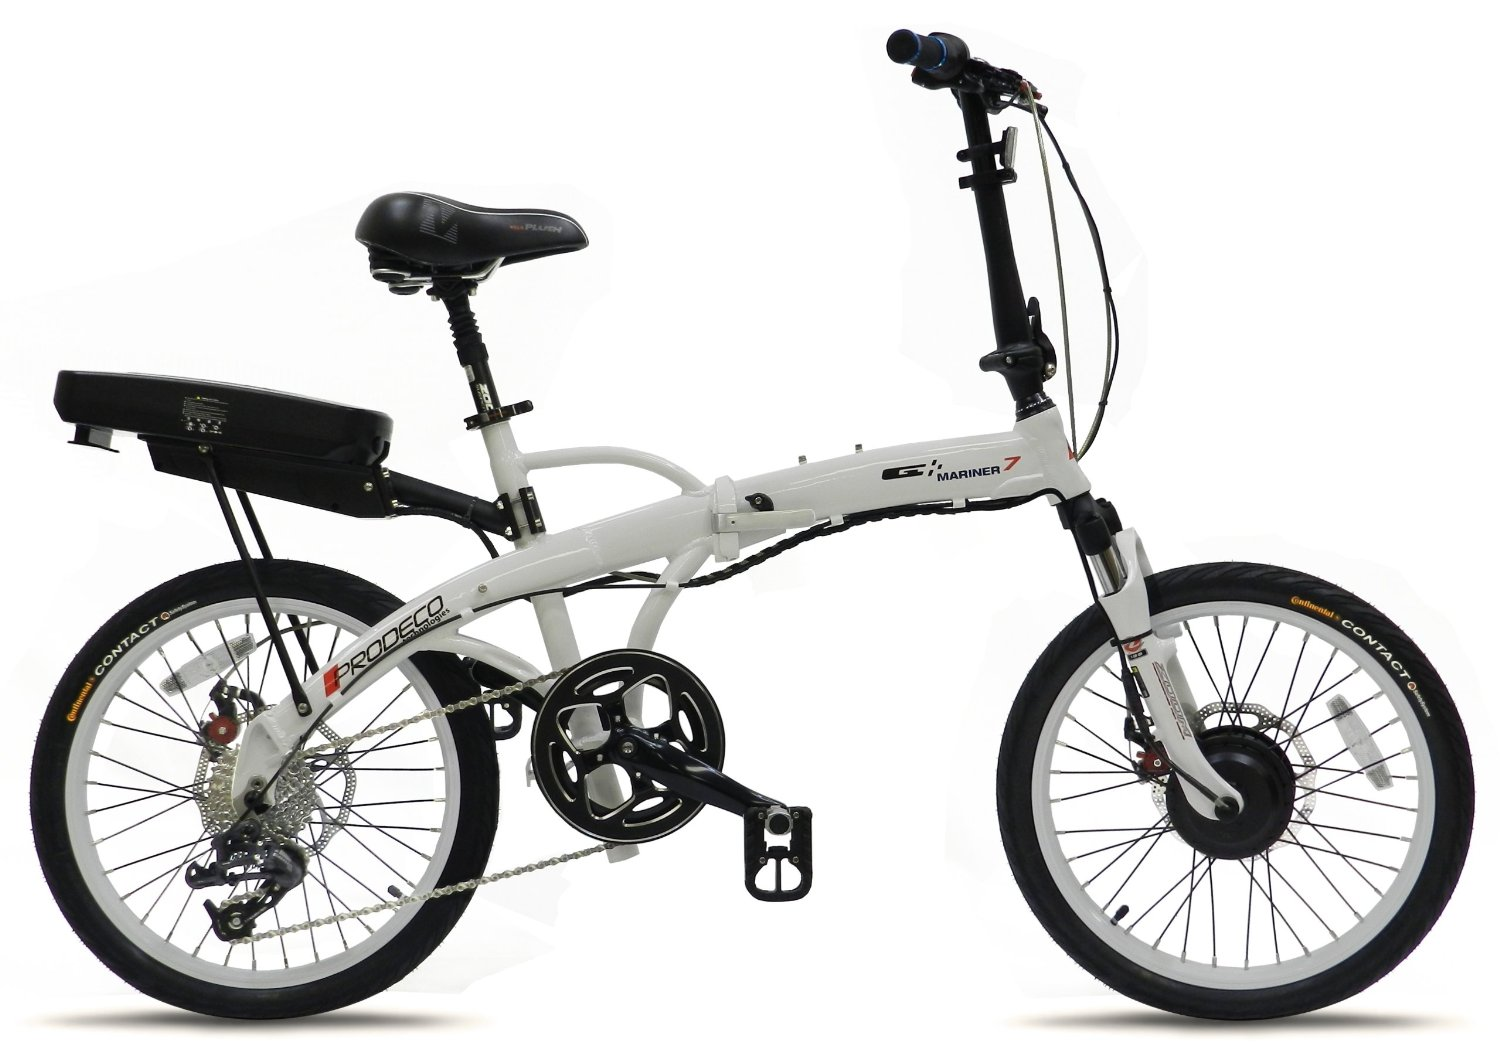 The Battery Powered Bicycle – Pros and Cons